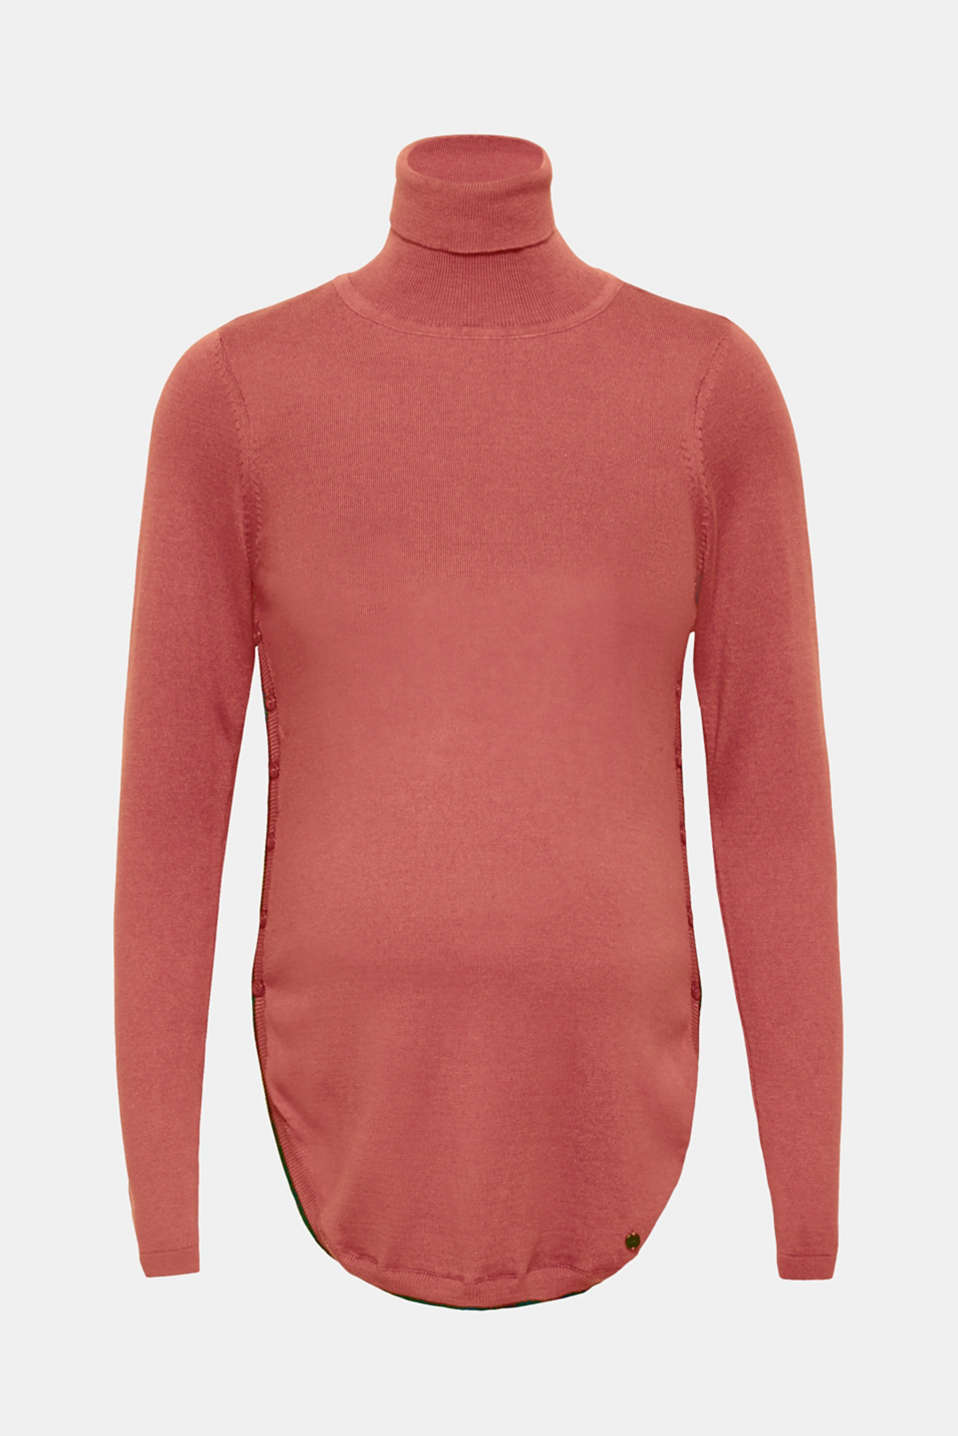 Esprit - Long polo neck jumper with button plackets